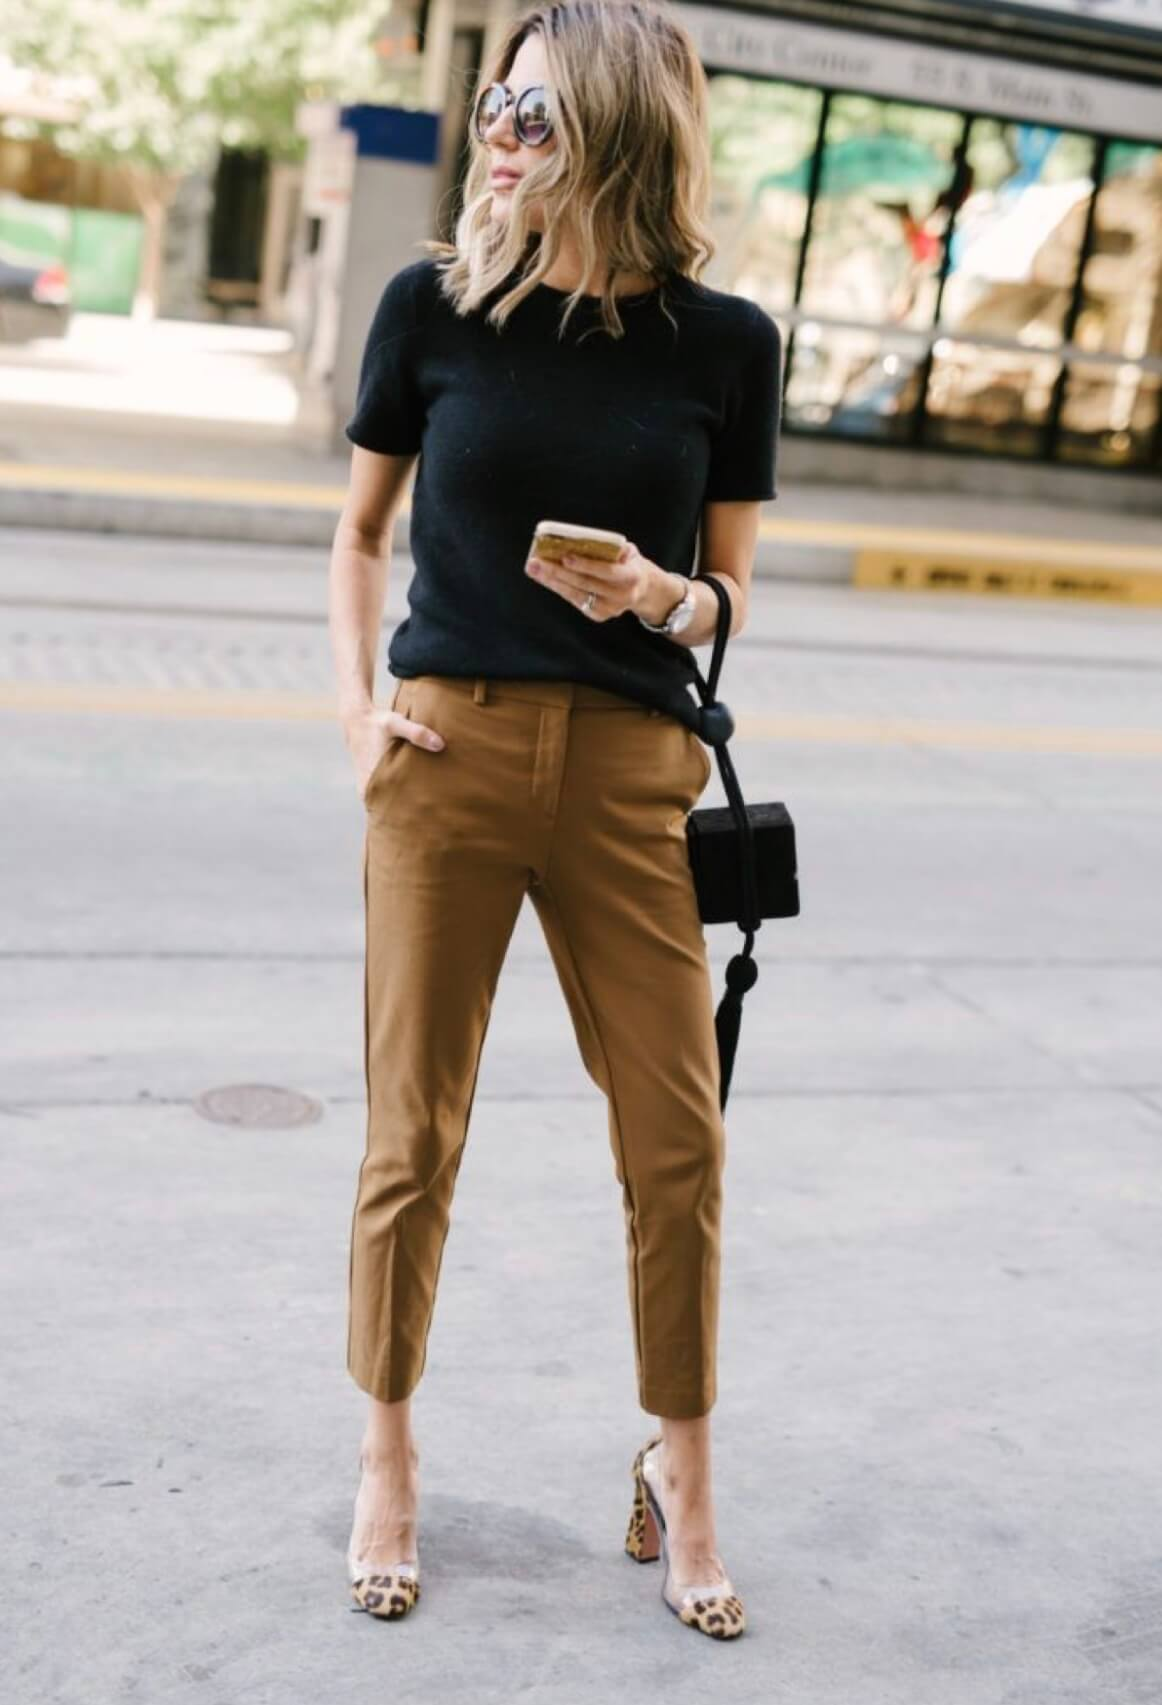 How to Wear Ankle Pants